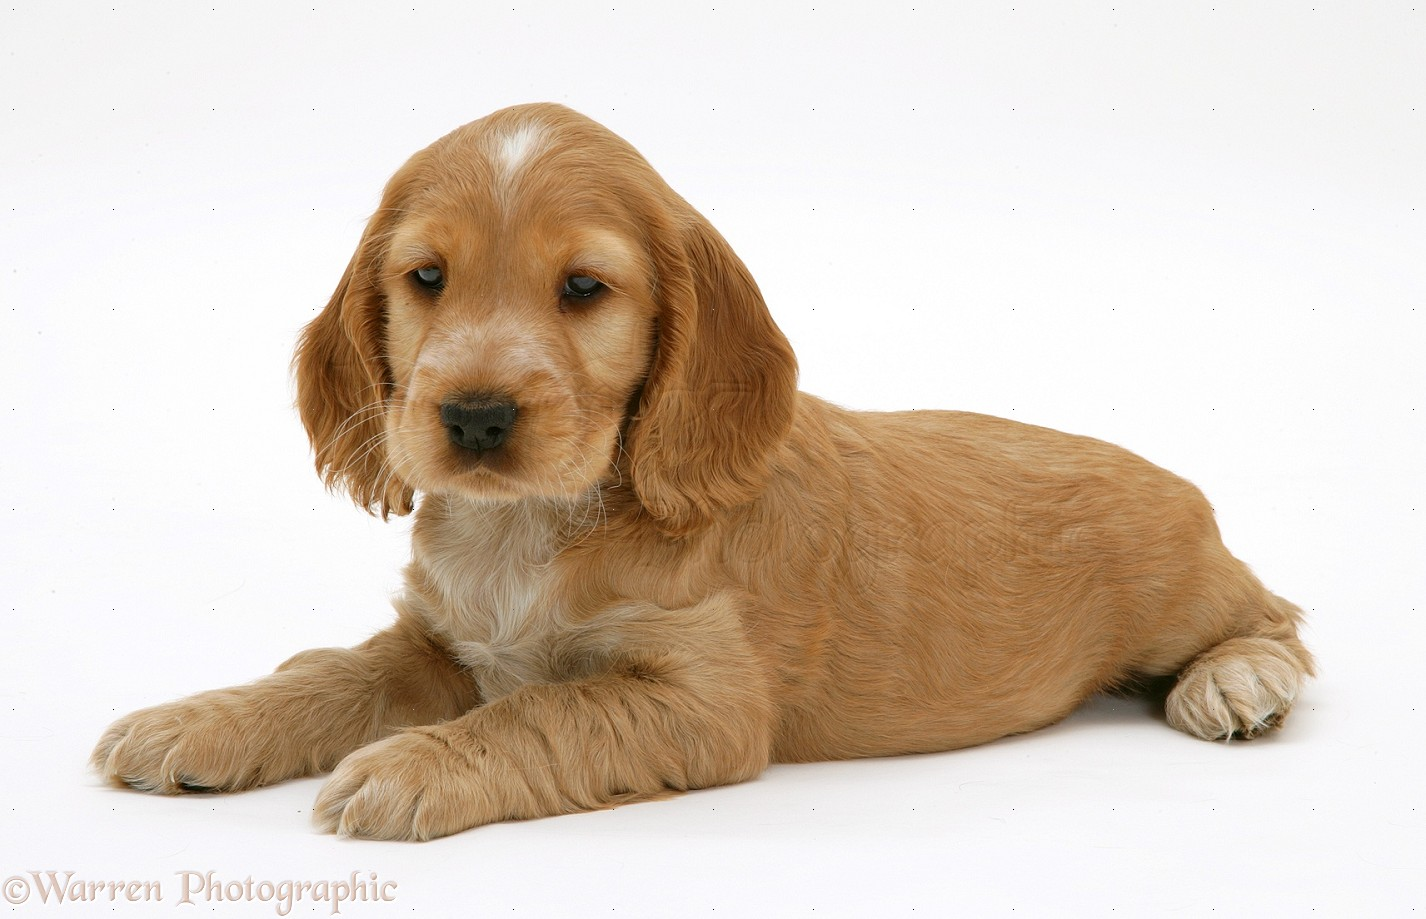 Golden Cocker Spaniel puppy photo - WP13174